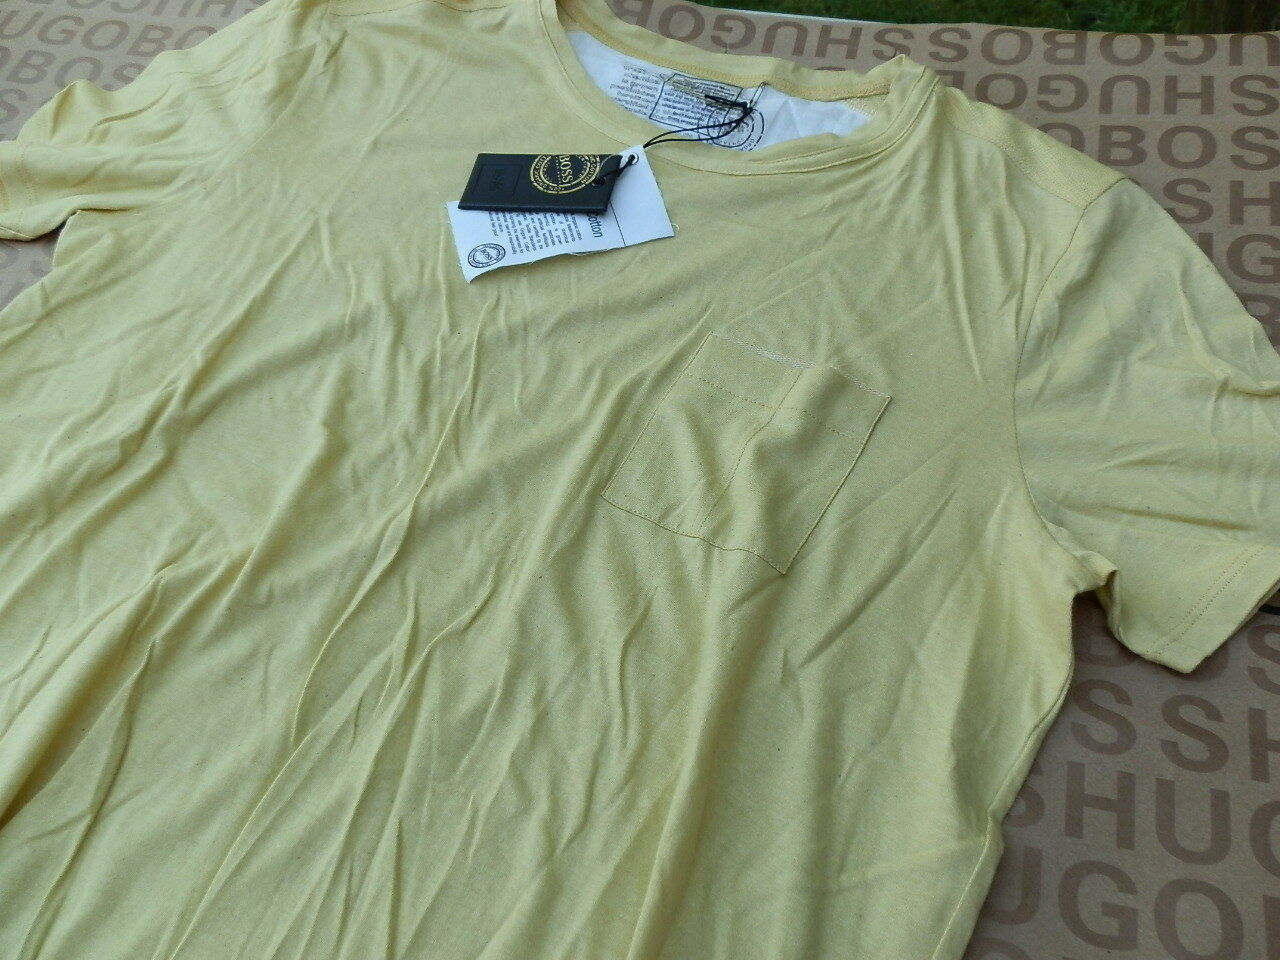 NUOVA NUOVA NUOVA Hugo Boss Uomo Giallo ORGANIC COTTON POLO ambientale Friendly T-Shirt M L c491e7